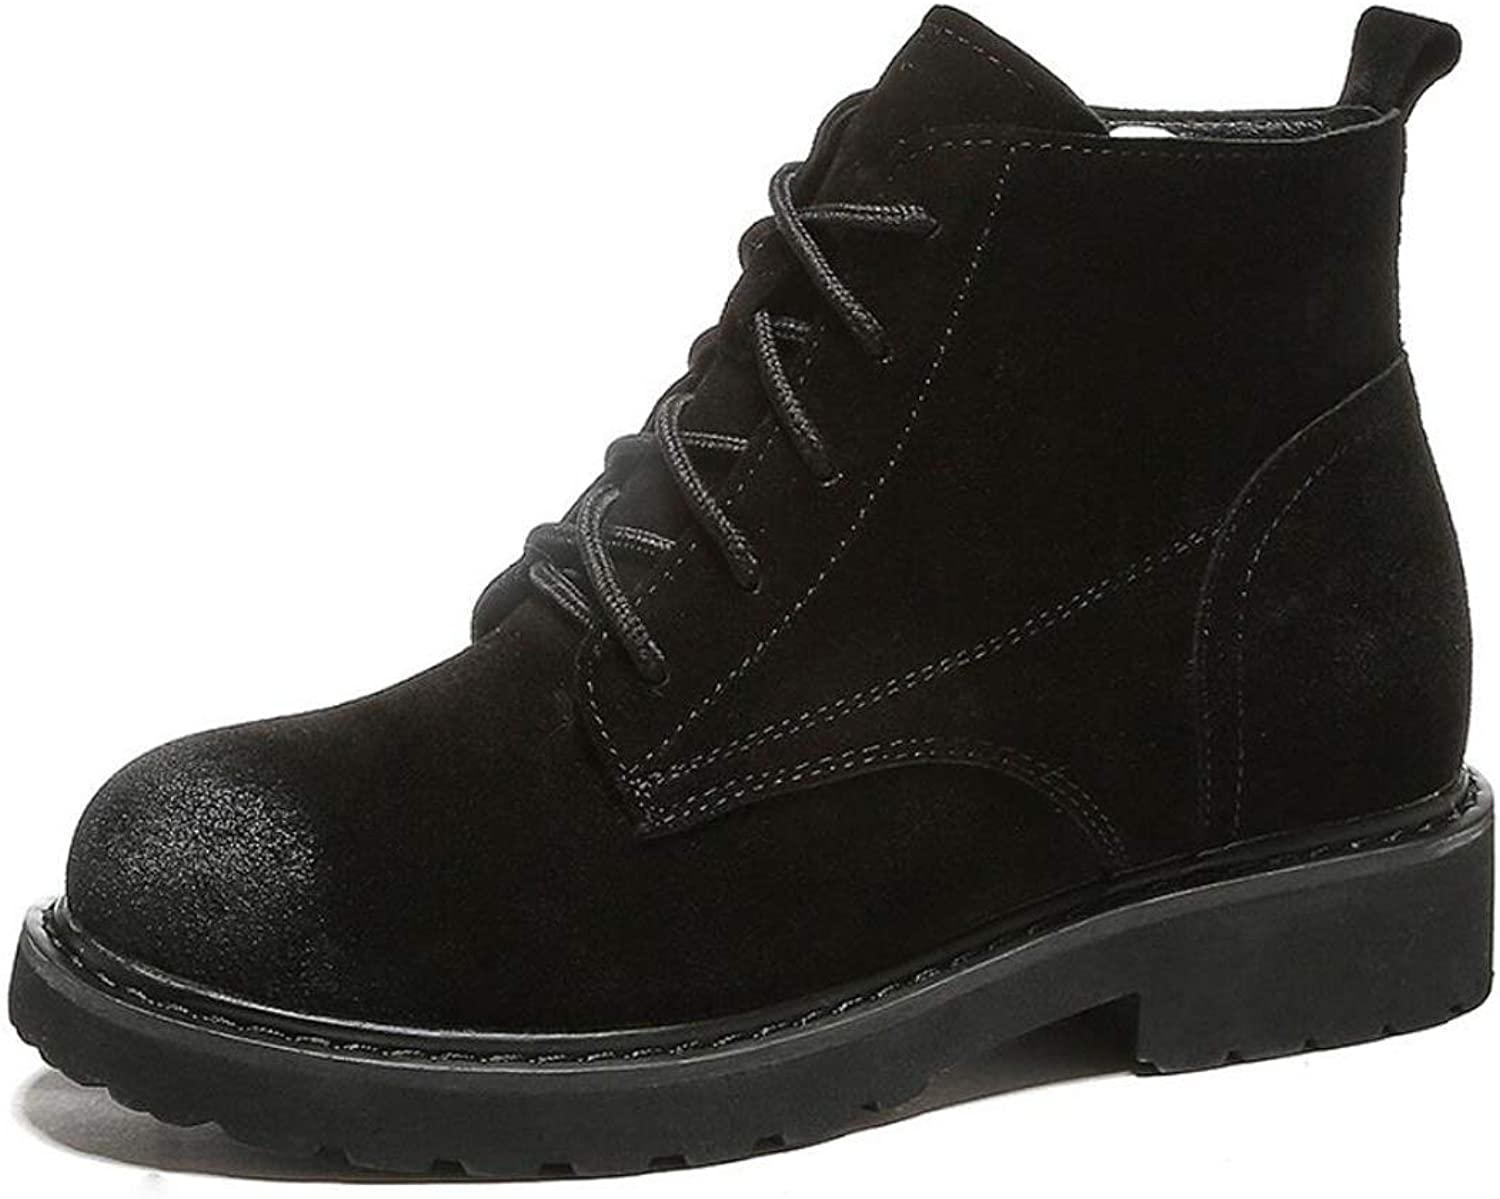 DANDANJIE Womens Martin Boots Retro Motorcycle shoes British Style Student Autumn Boots